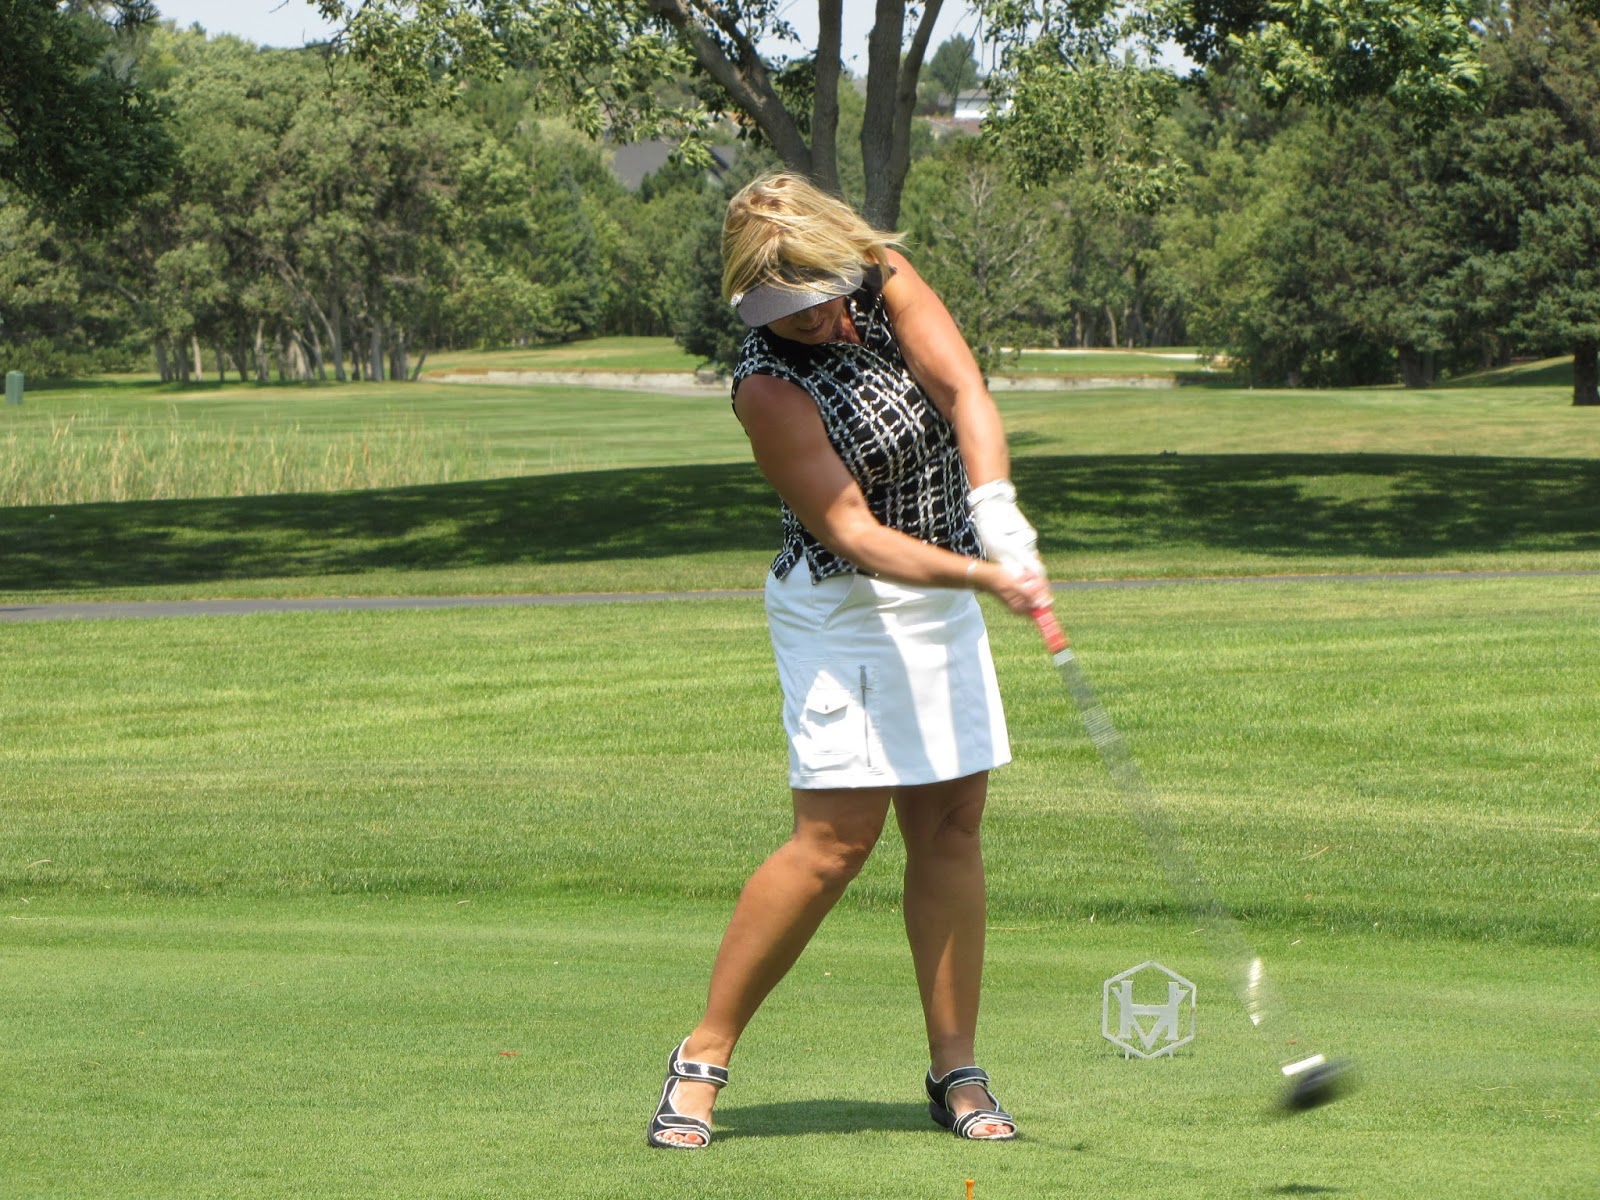 cute golf outfits for girls golf clothes make the woman